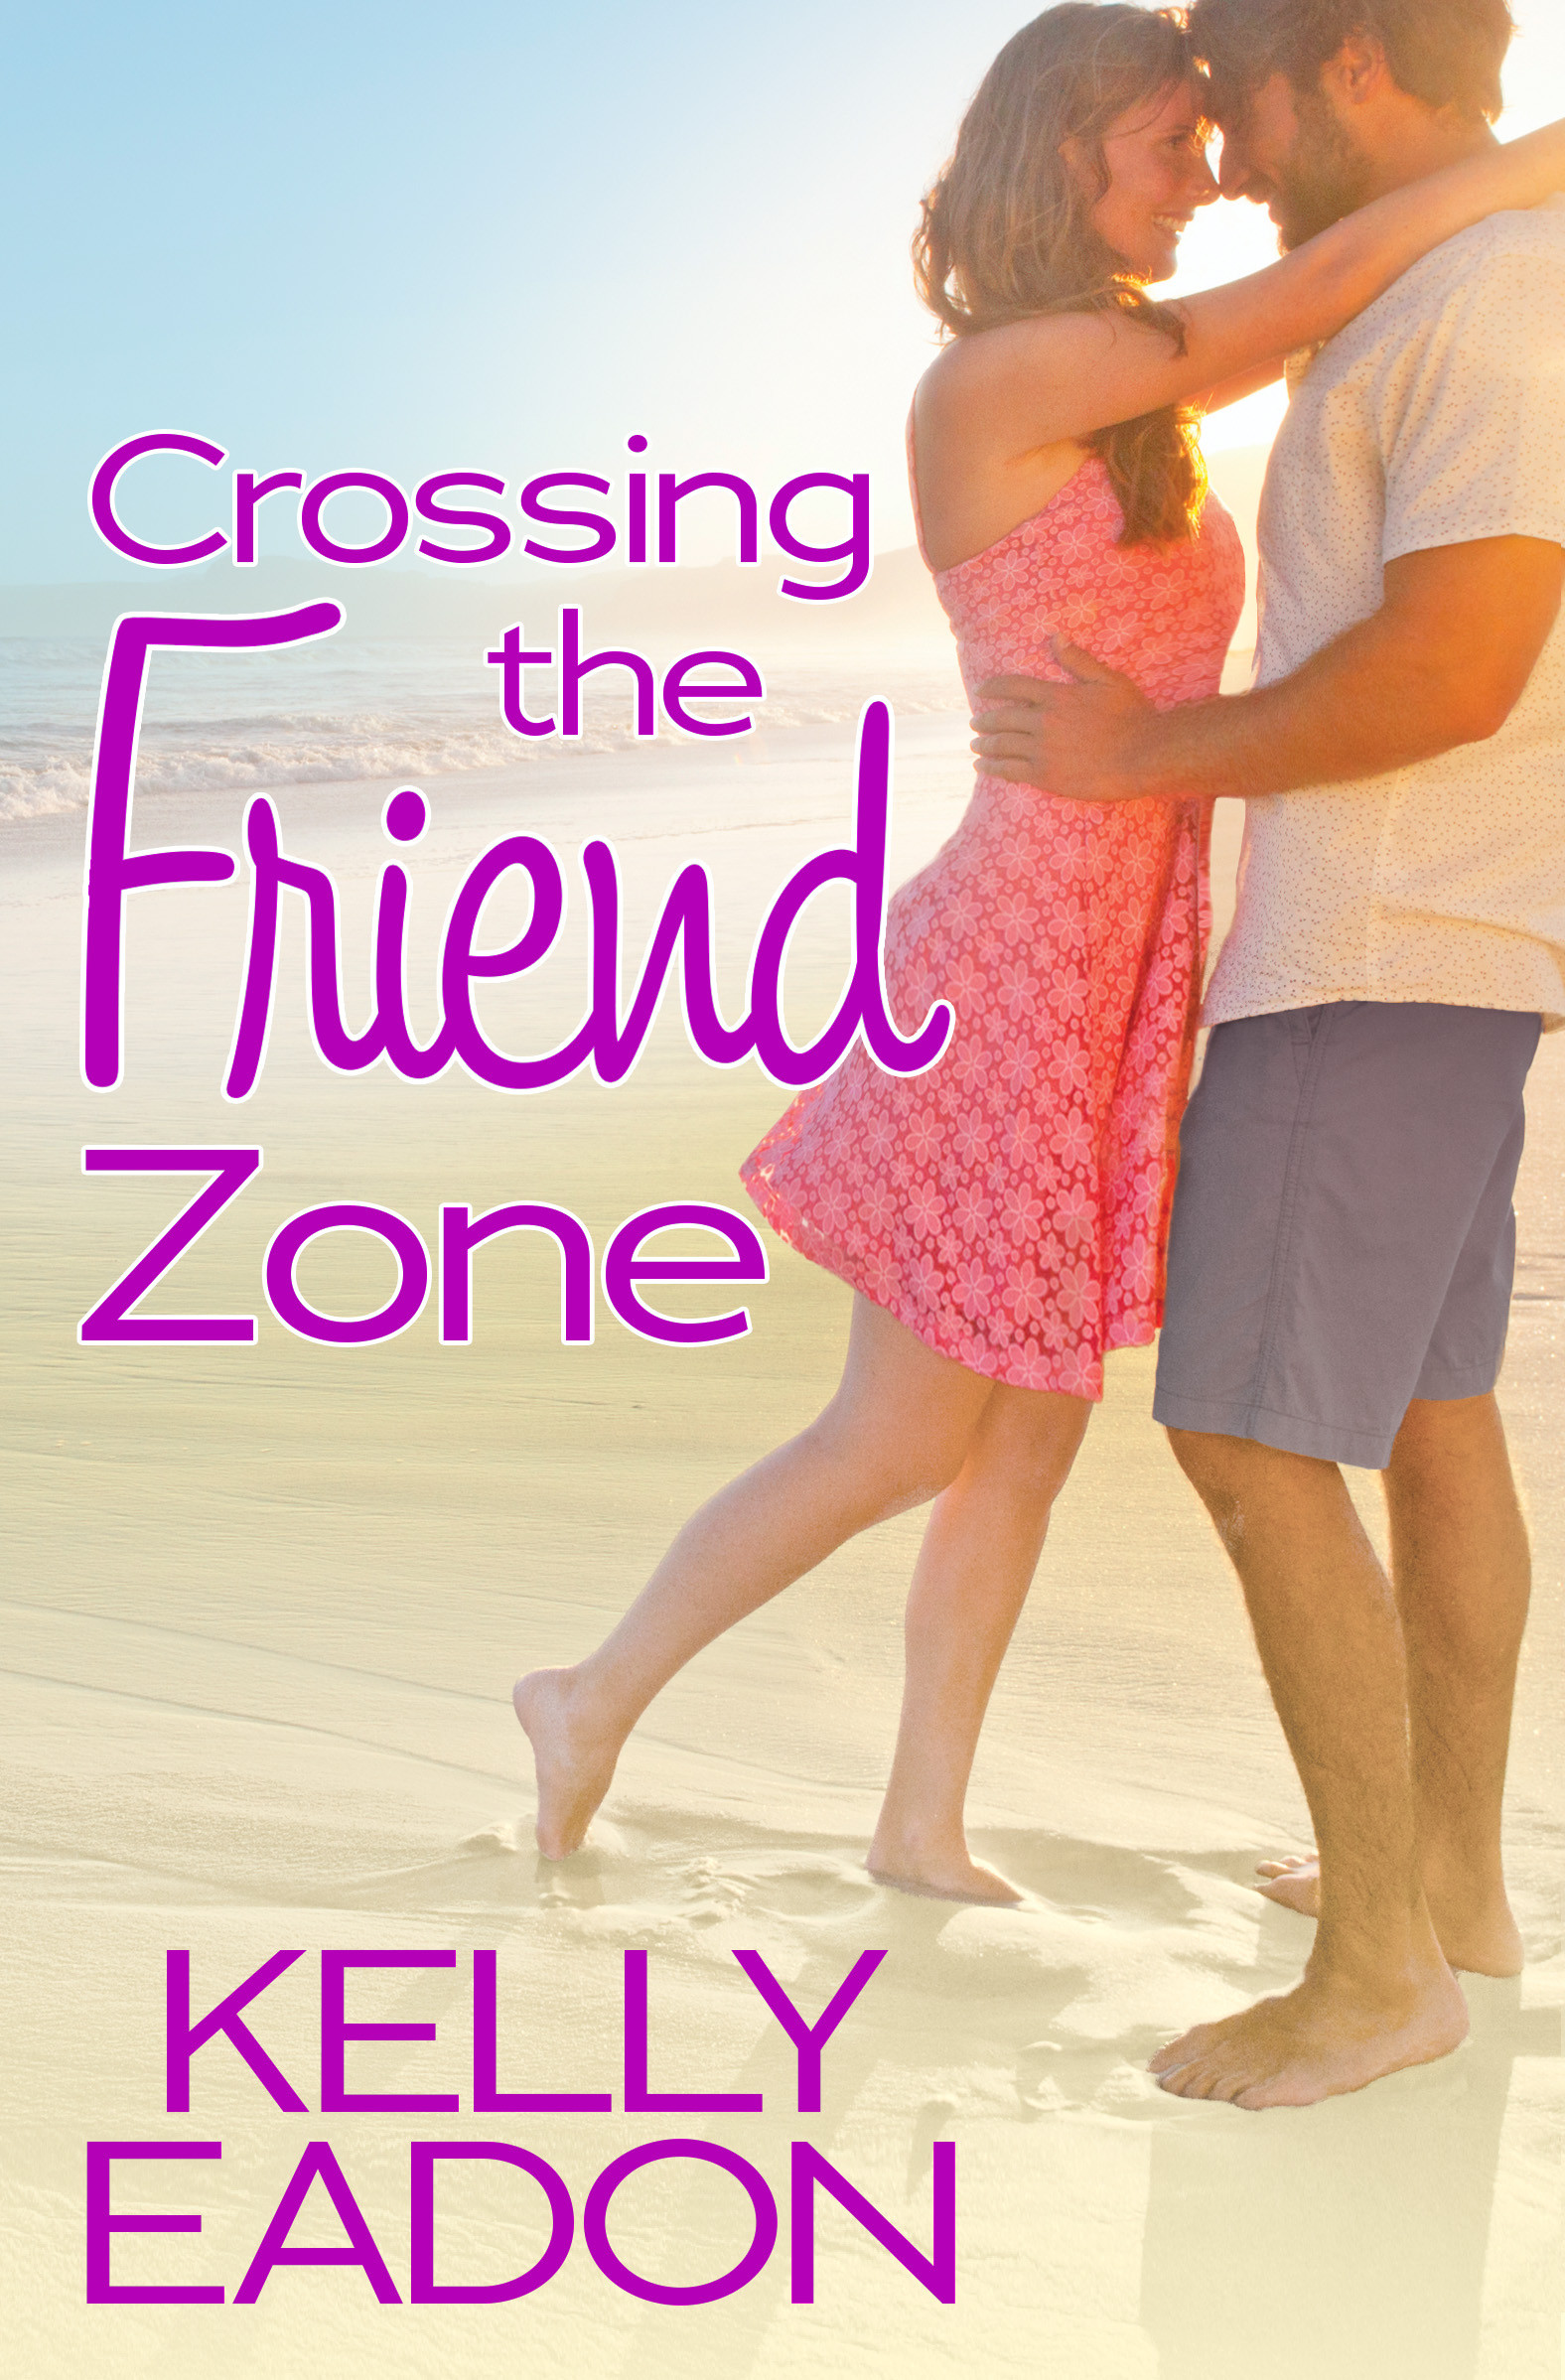 Crossing the Friends Zone